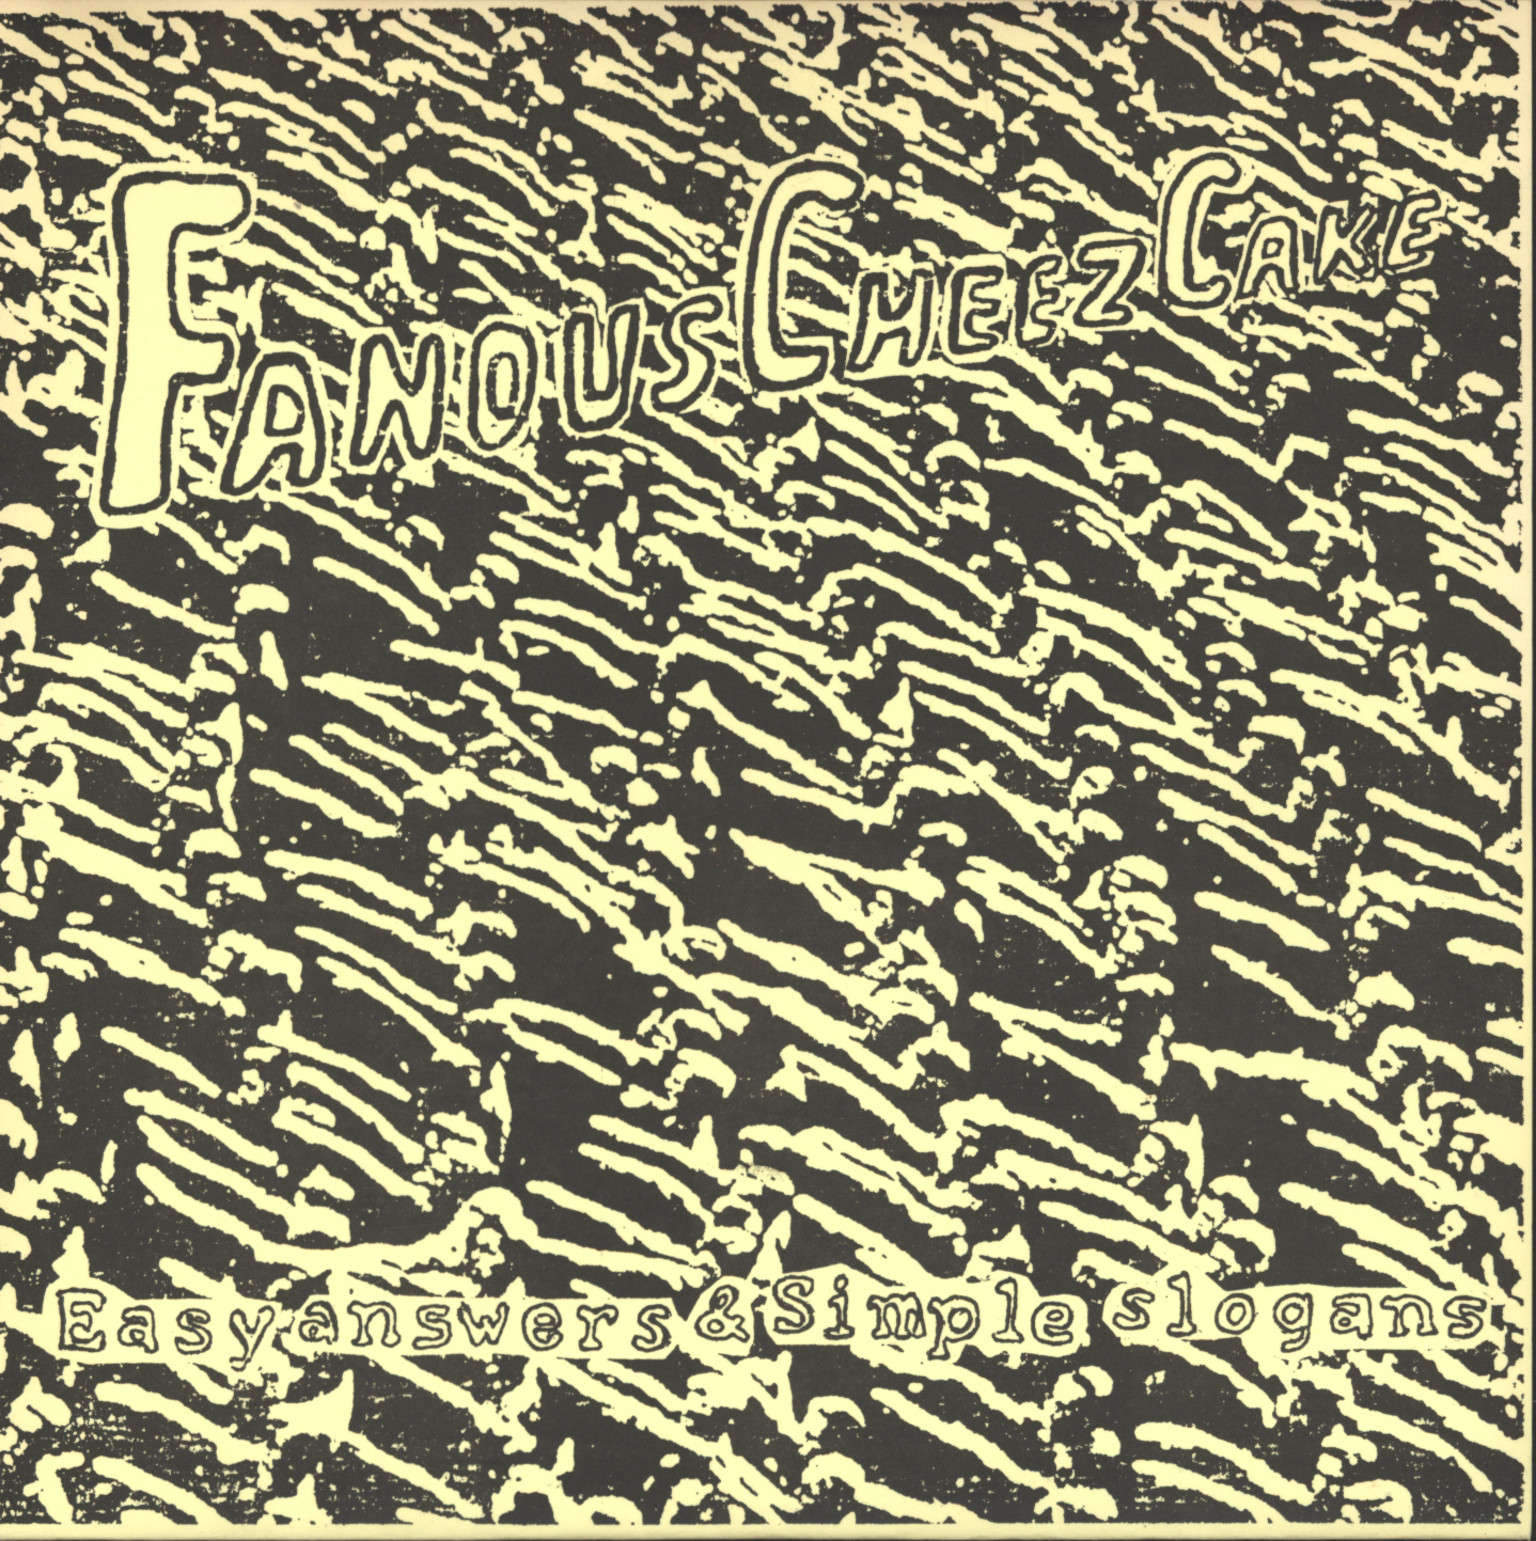 "Fanous Cheezcake: Easy Answers & Simple Slogans, 7"" Single (Vinyl)"